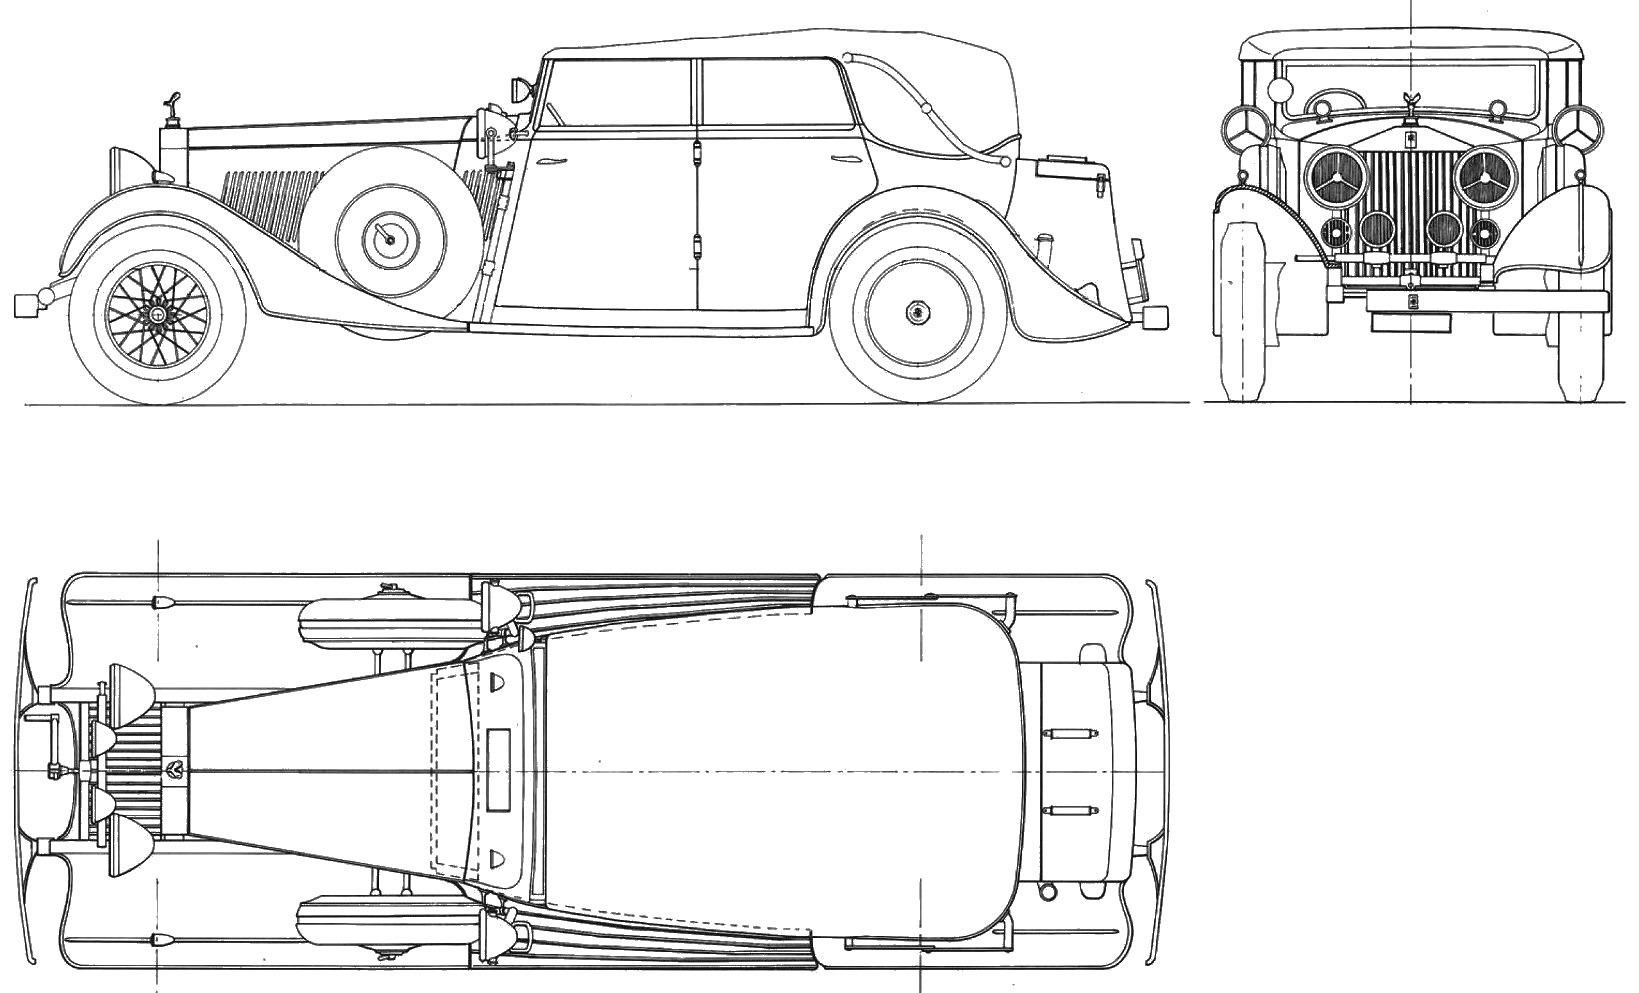 Rolls Royce Phantom Ii Sedan Blueprints Free